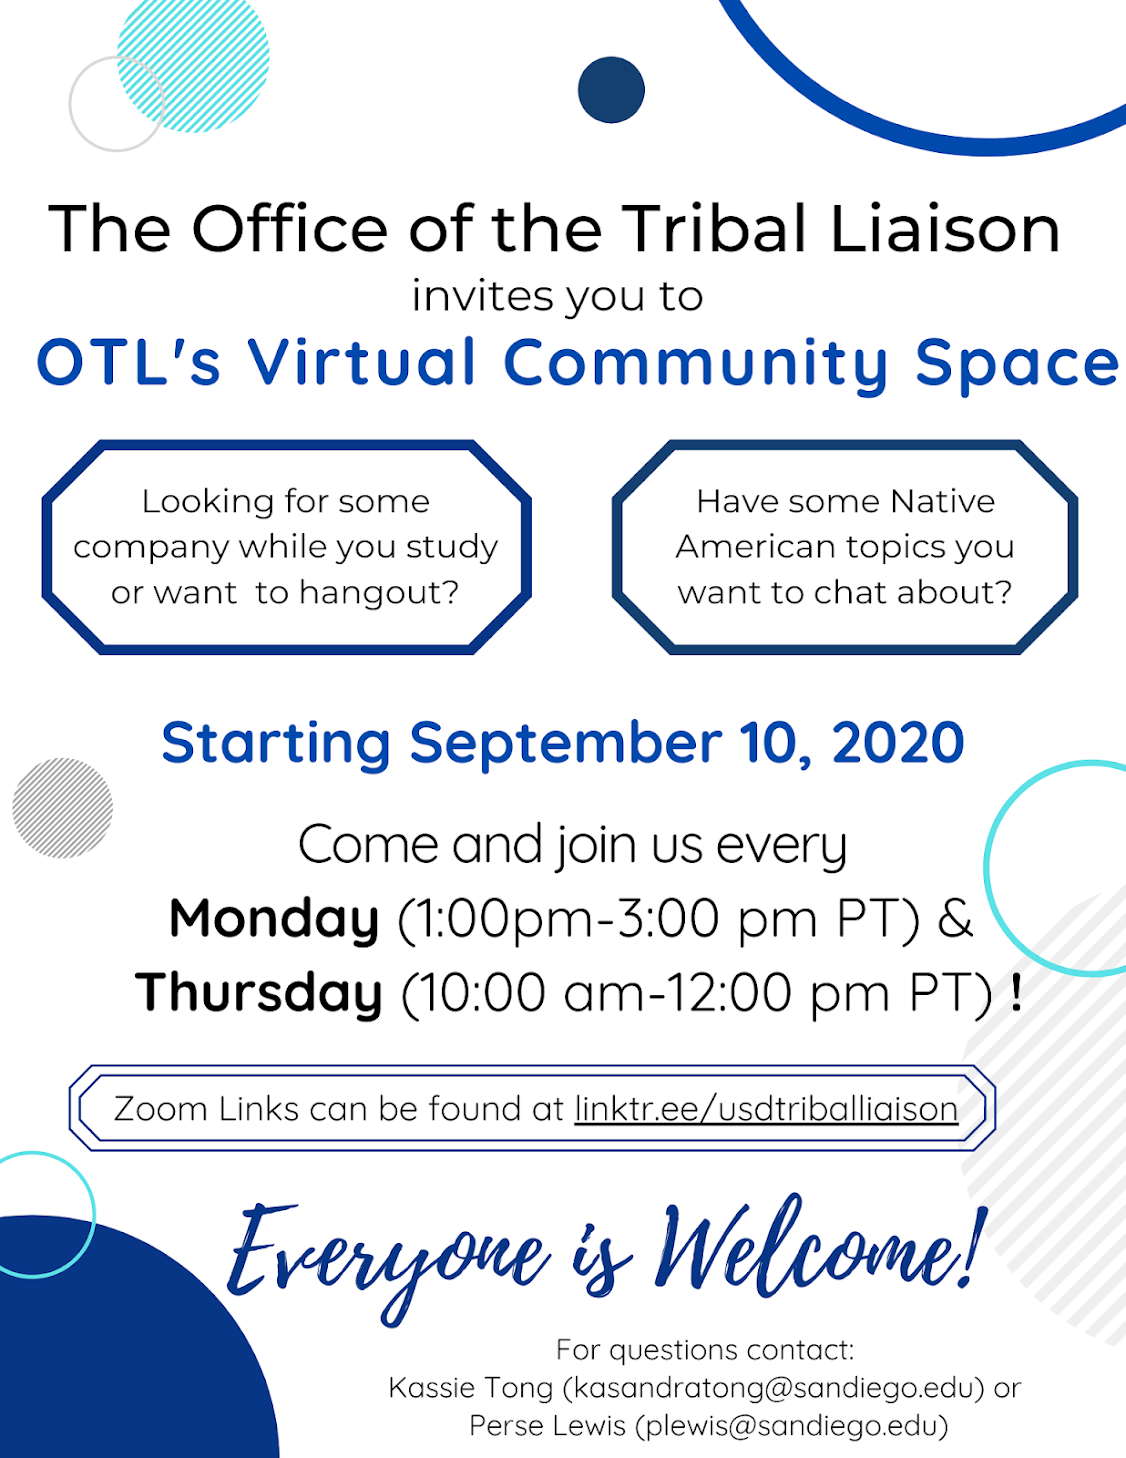 Office of the Tribal Liaison Community Space Hours: Mondays from 1-3pm and Thursdays from 10am-12pm